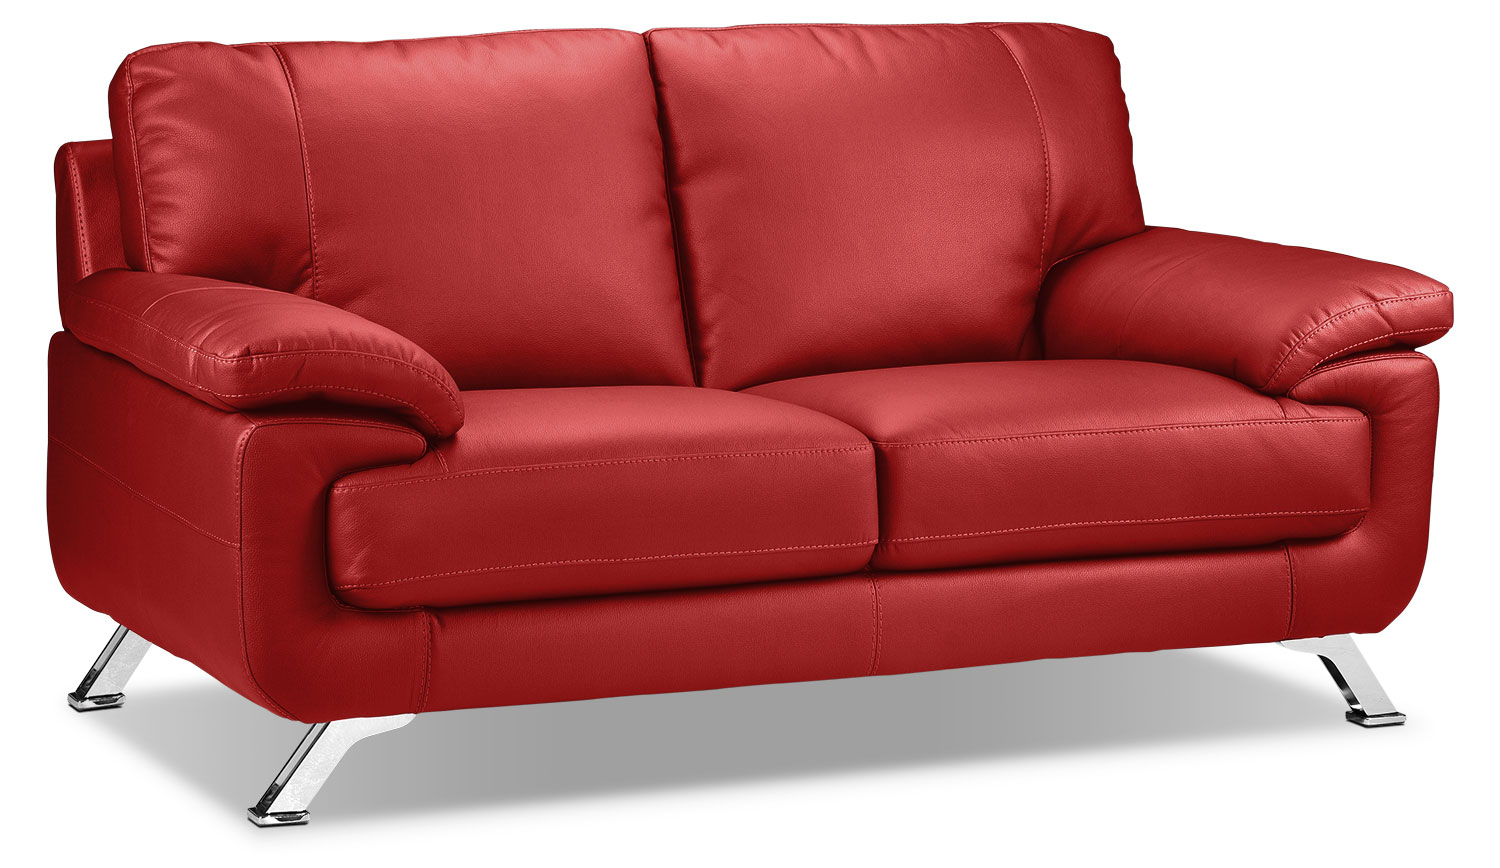 Infinity Loveseat - Red